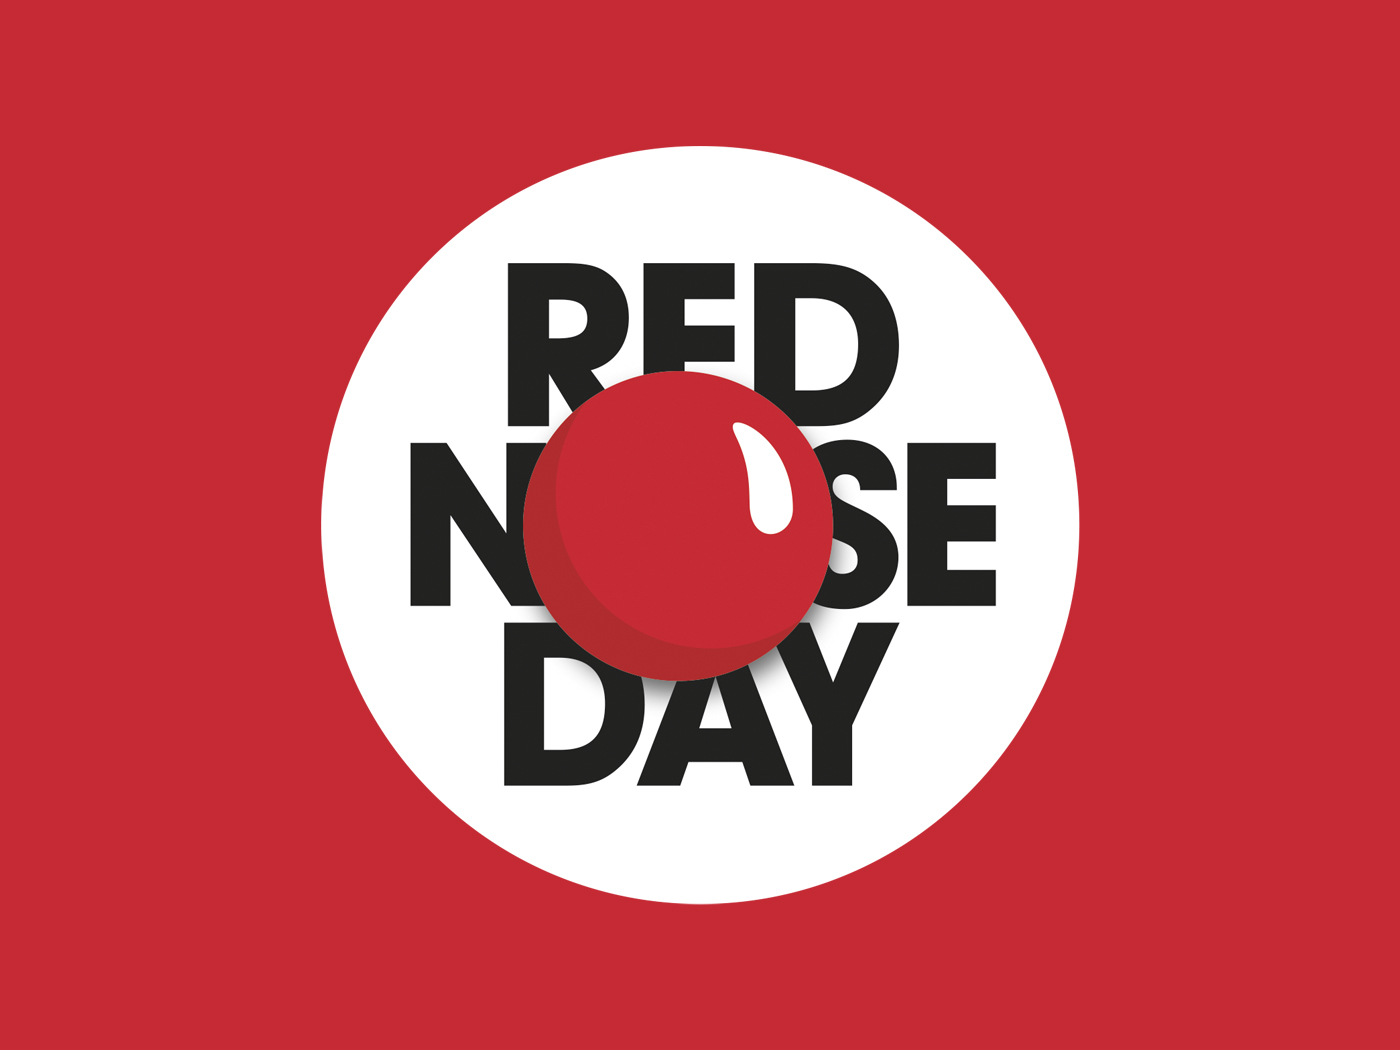 red nose day 2017 pixmatch search with picture application